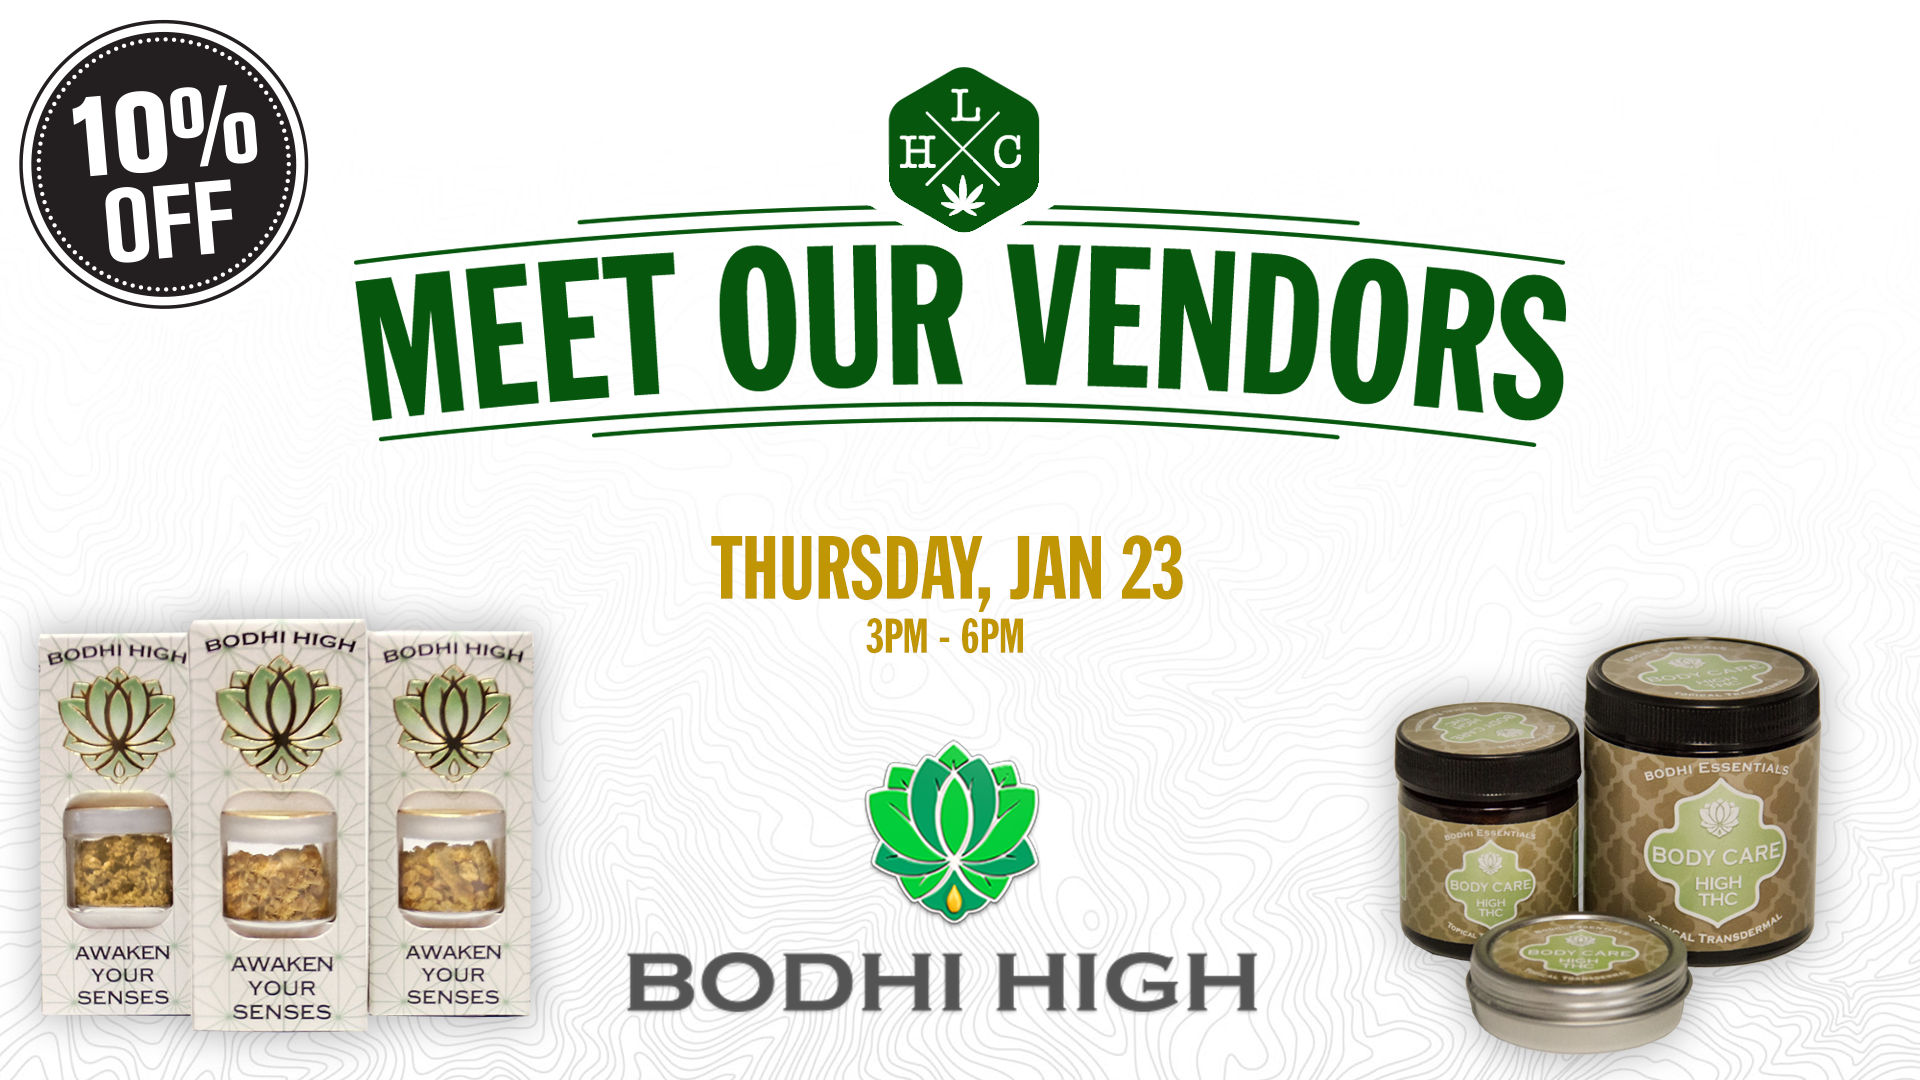 Meet Our Vendors_Bodhi High1.23.2019.png